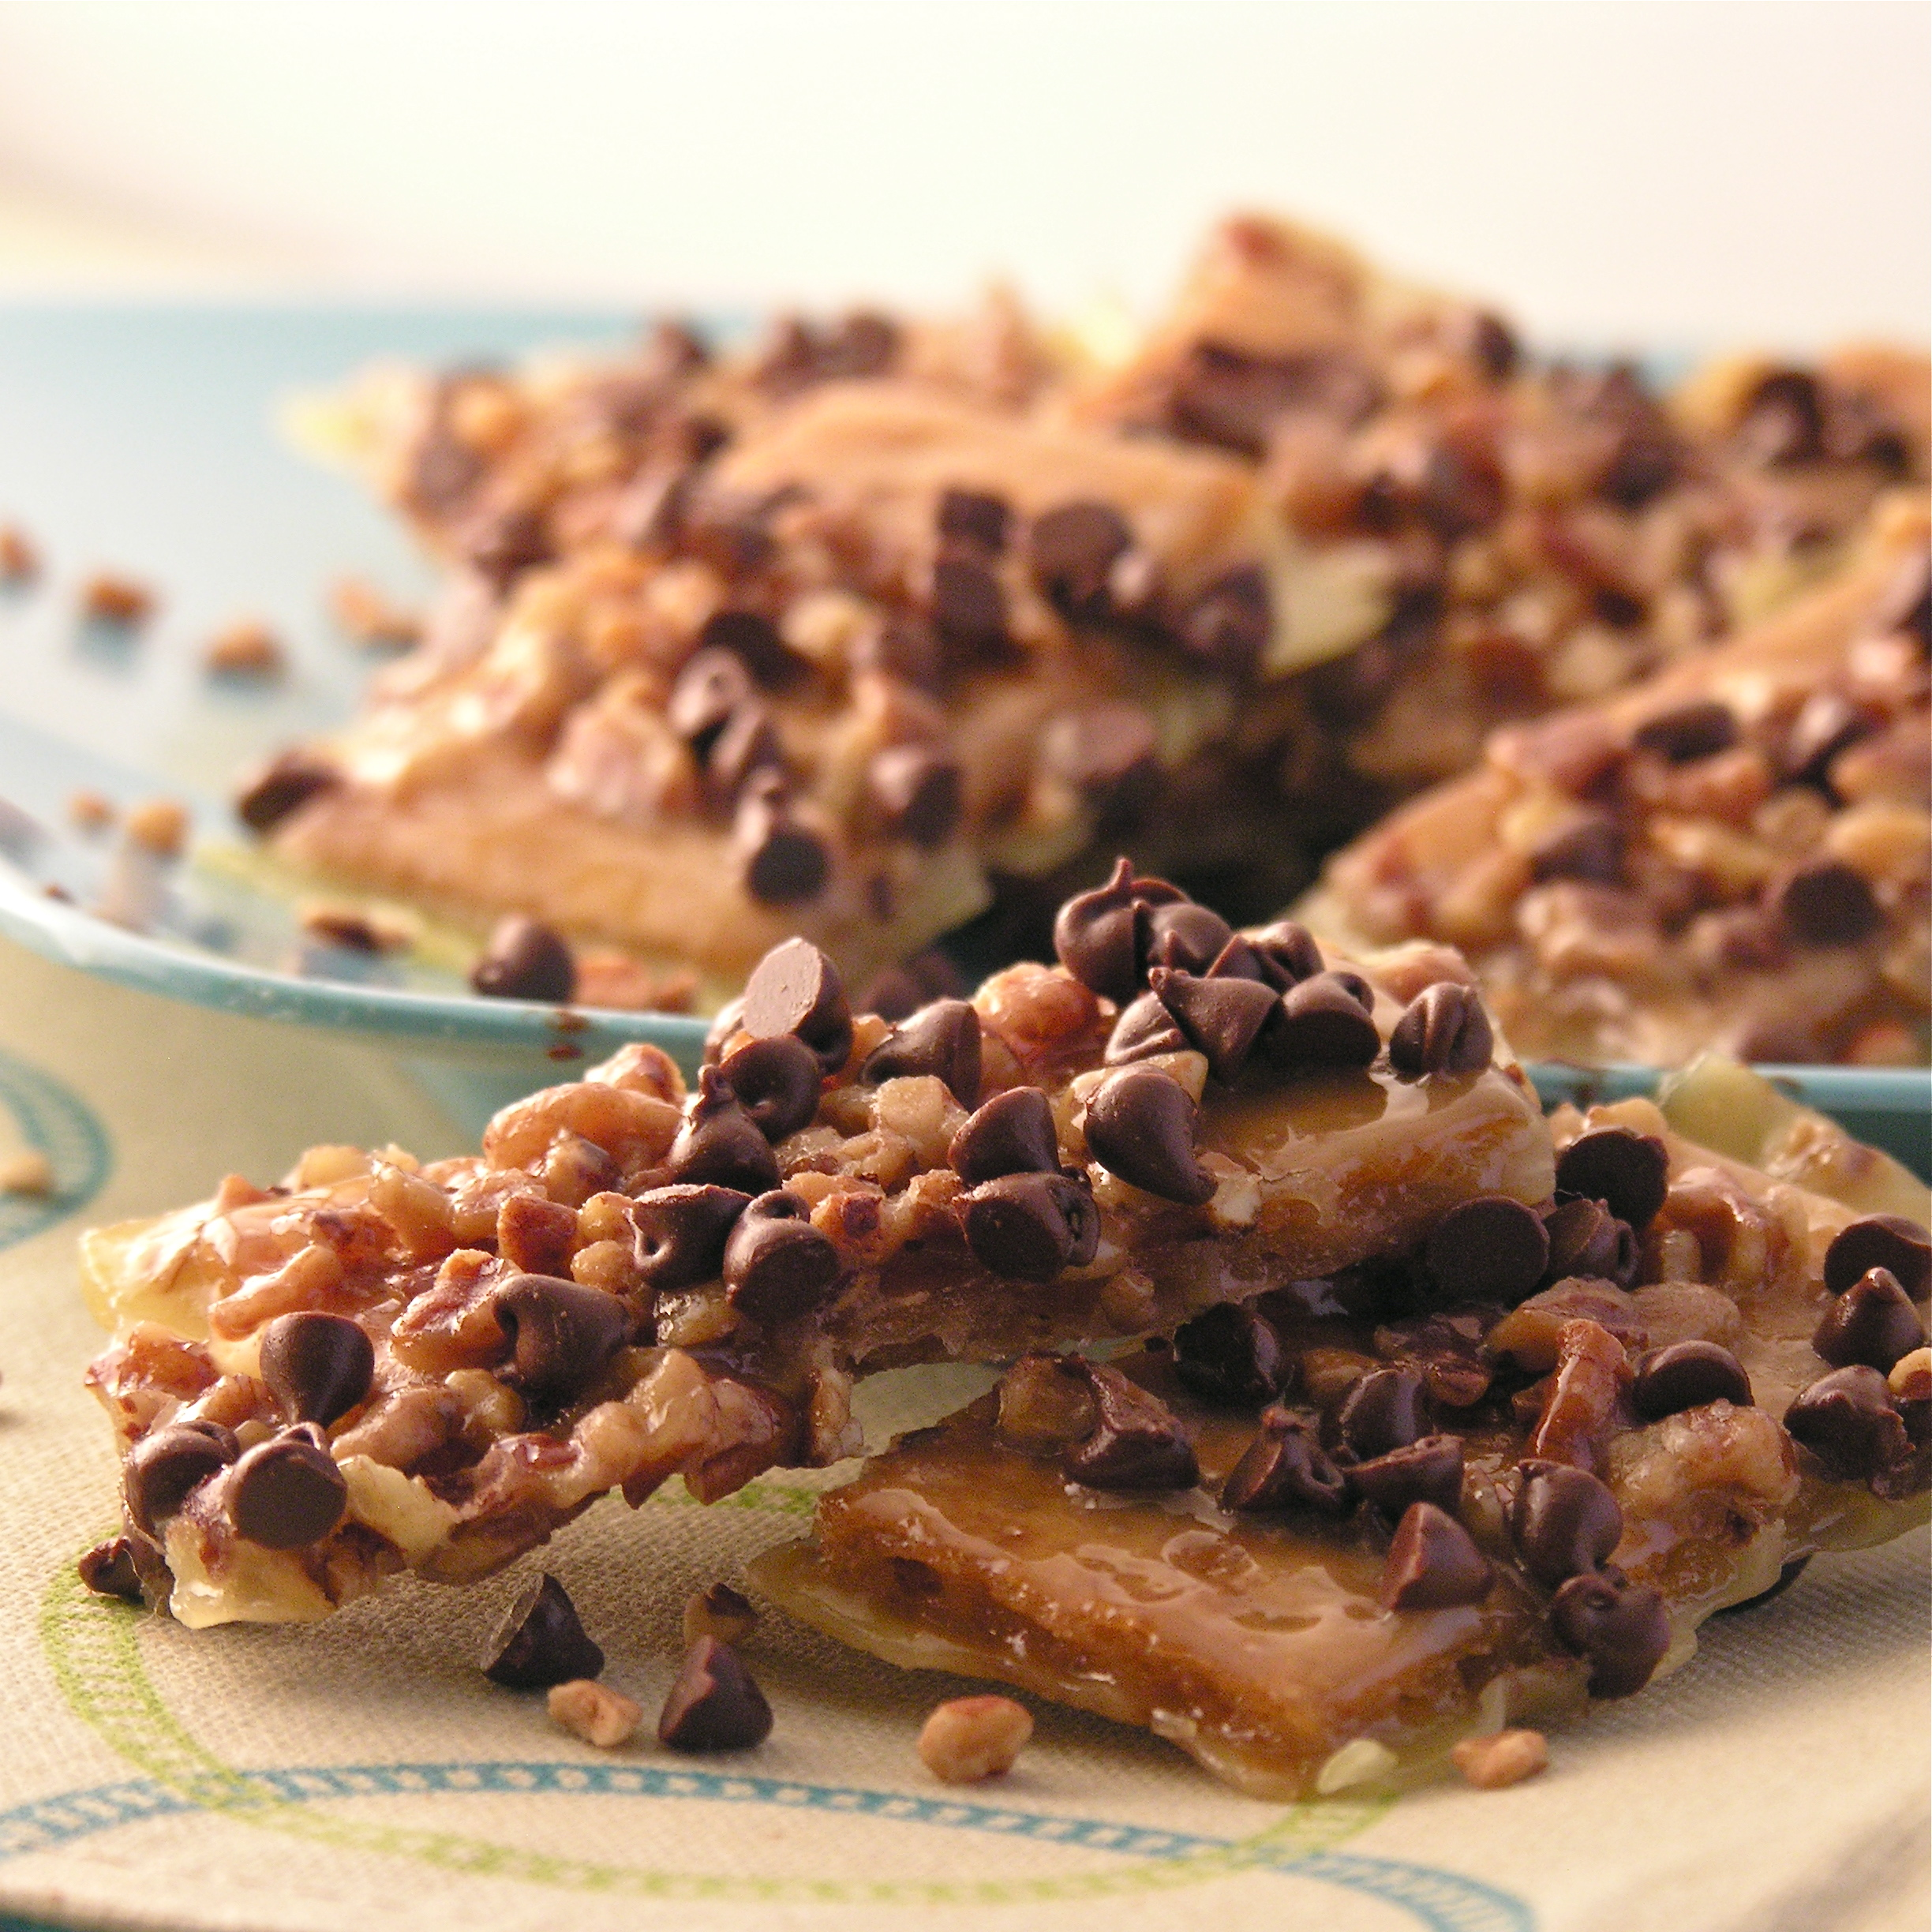 Crunchy Toffee Cookies